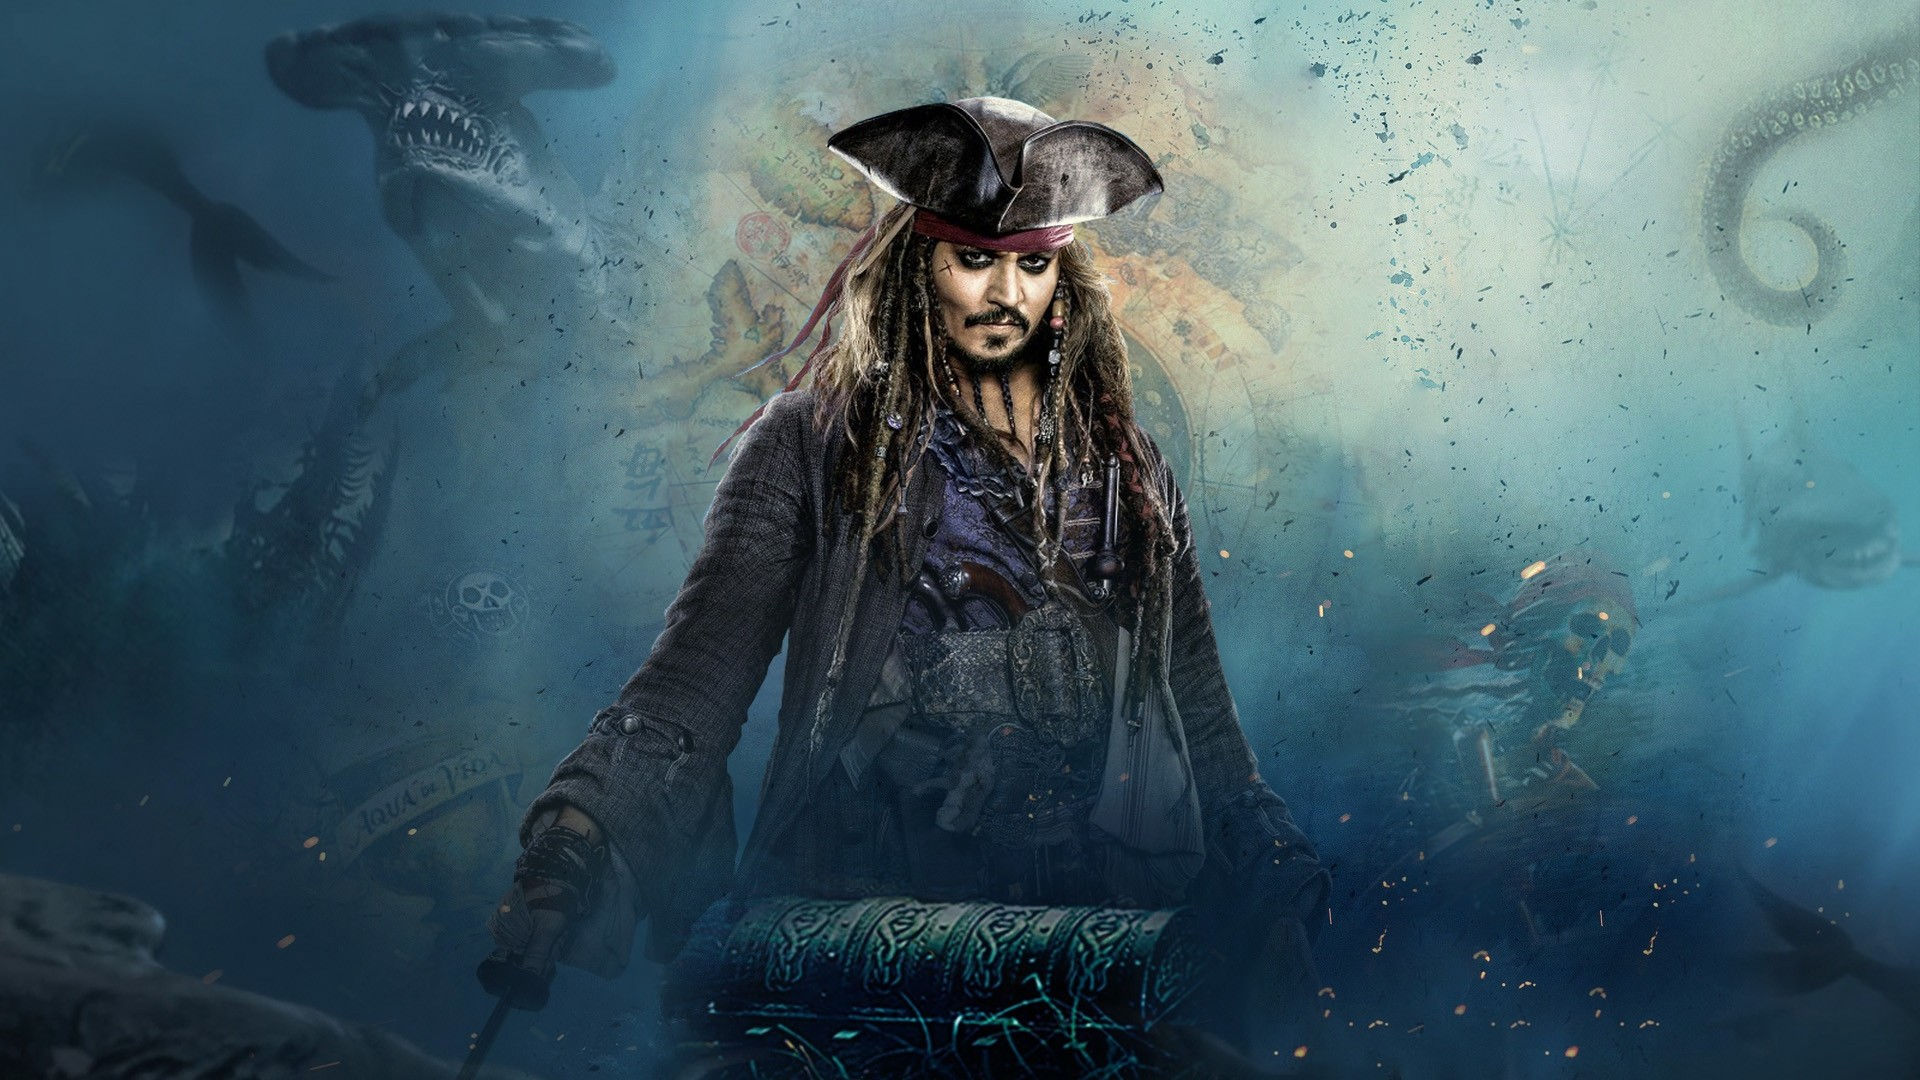 Pirate Wallpaper and Background